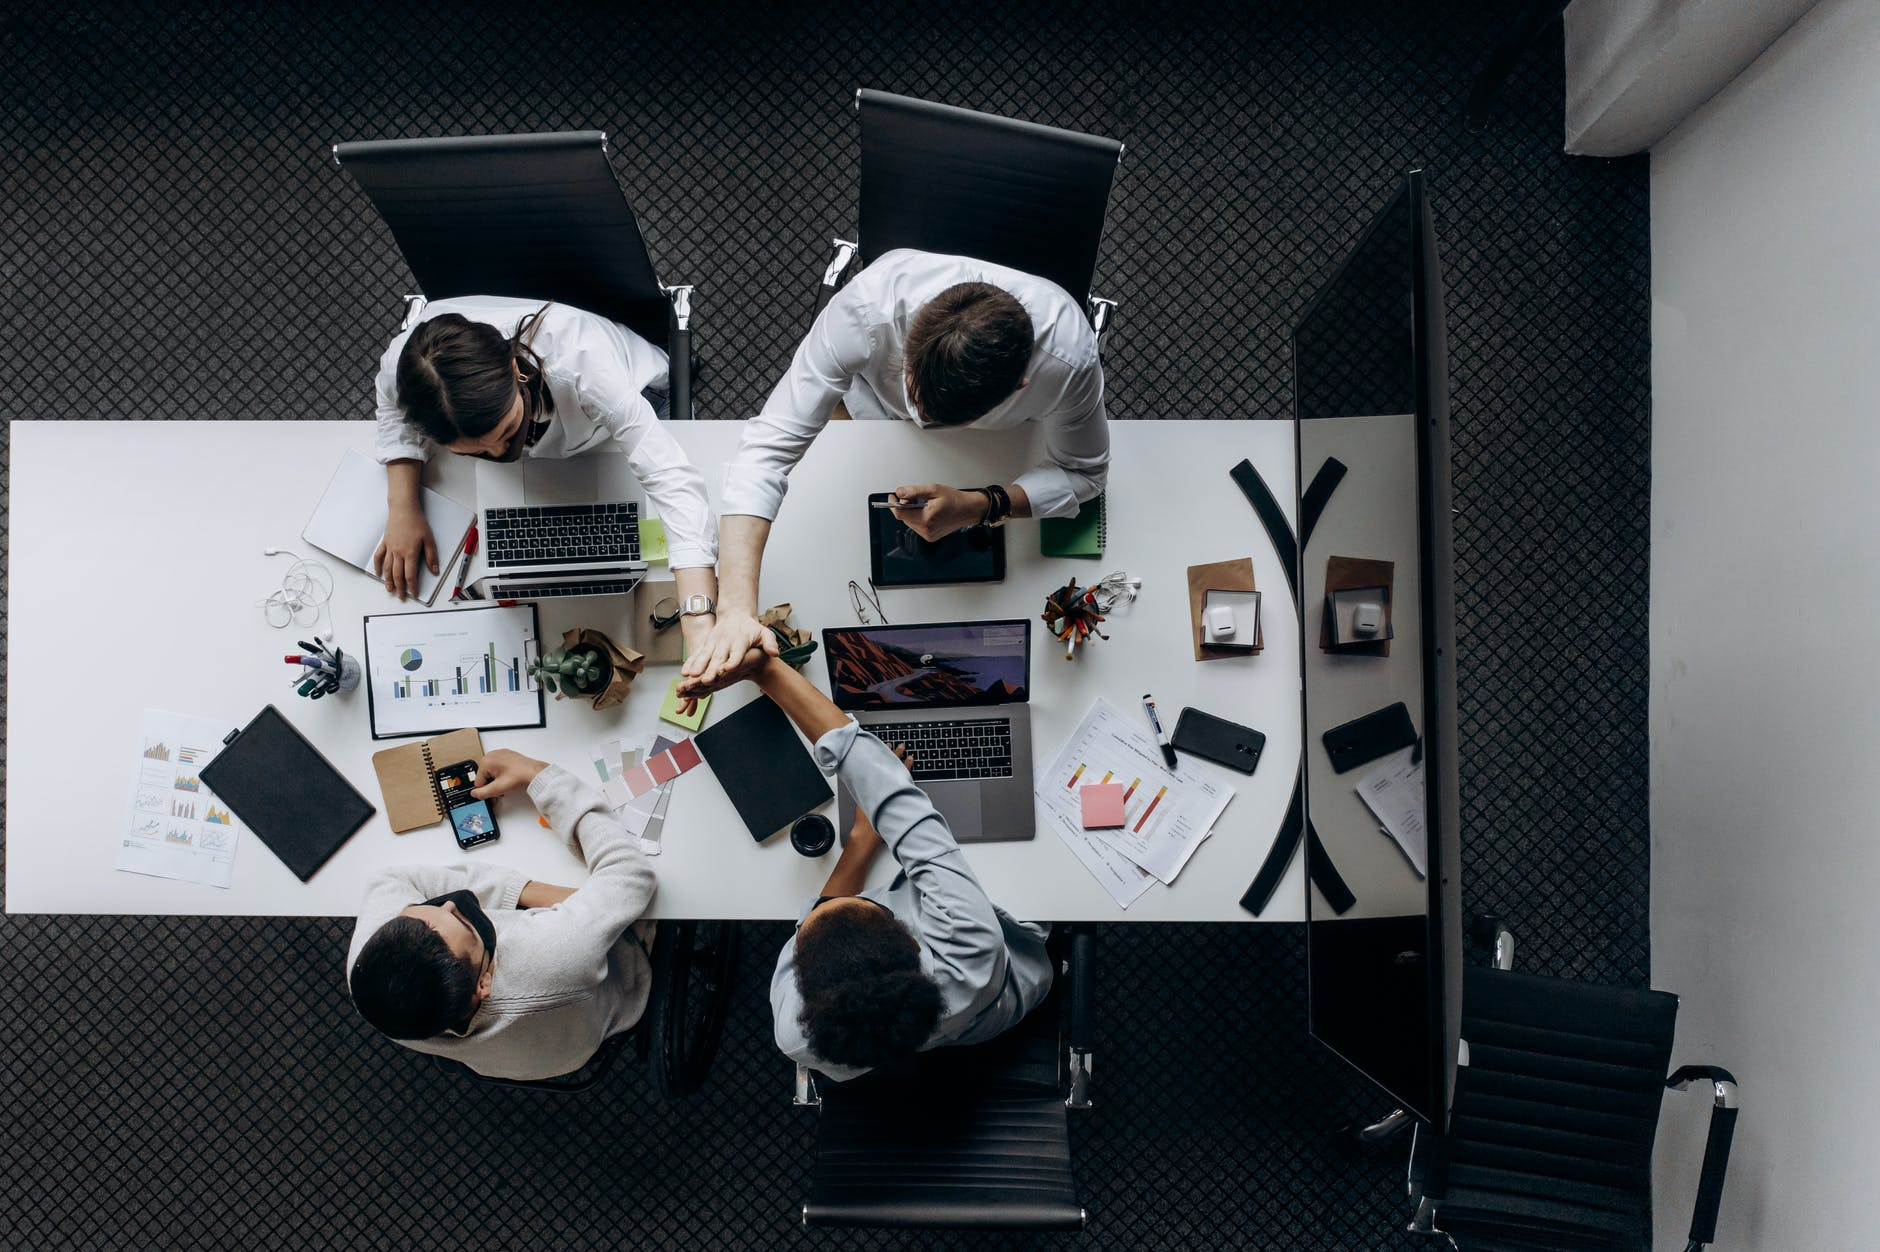 Industries AI Will Disrupt includes Wall Street. A group of men sit around a boardroom table with a large screen TV at the end. Everyone has phones and laptops and they are looking at charts and graphs